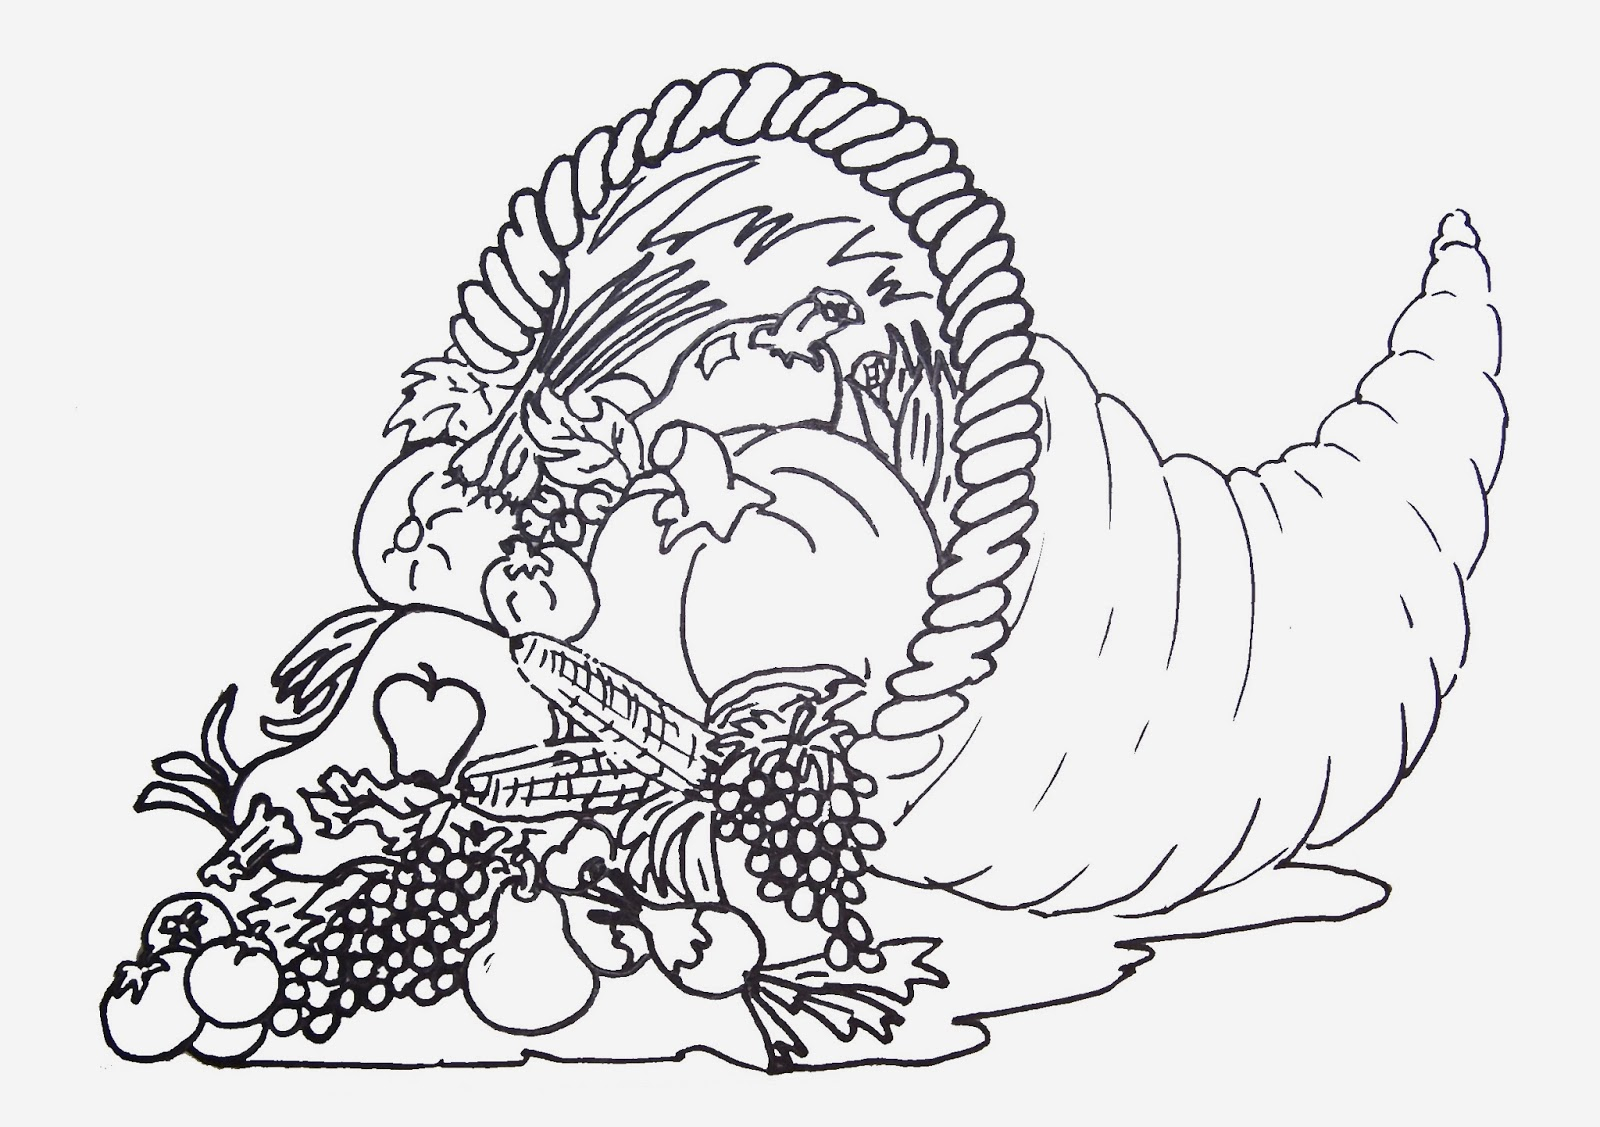 Free Printable Coloring Pages For Kids Cornucopia Thanksgiving Free Printable Coloring Pages 13